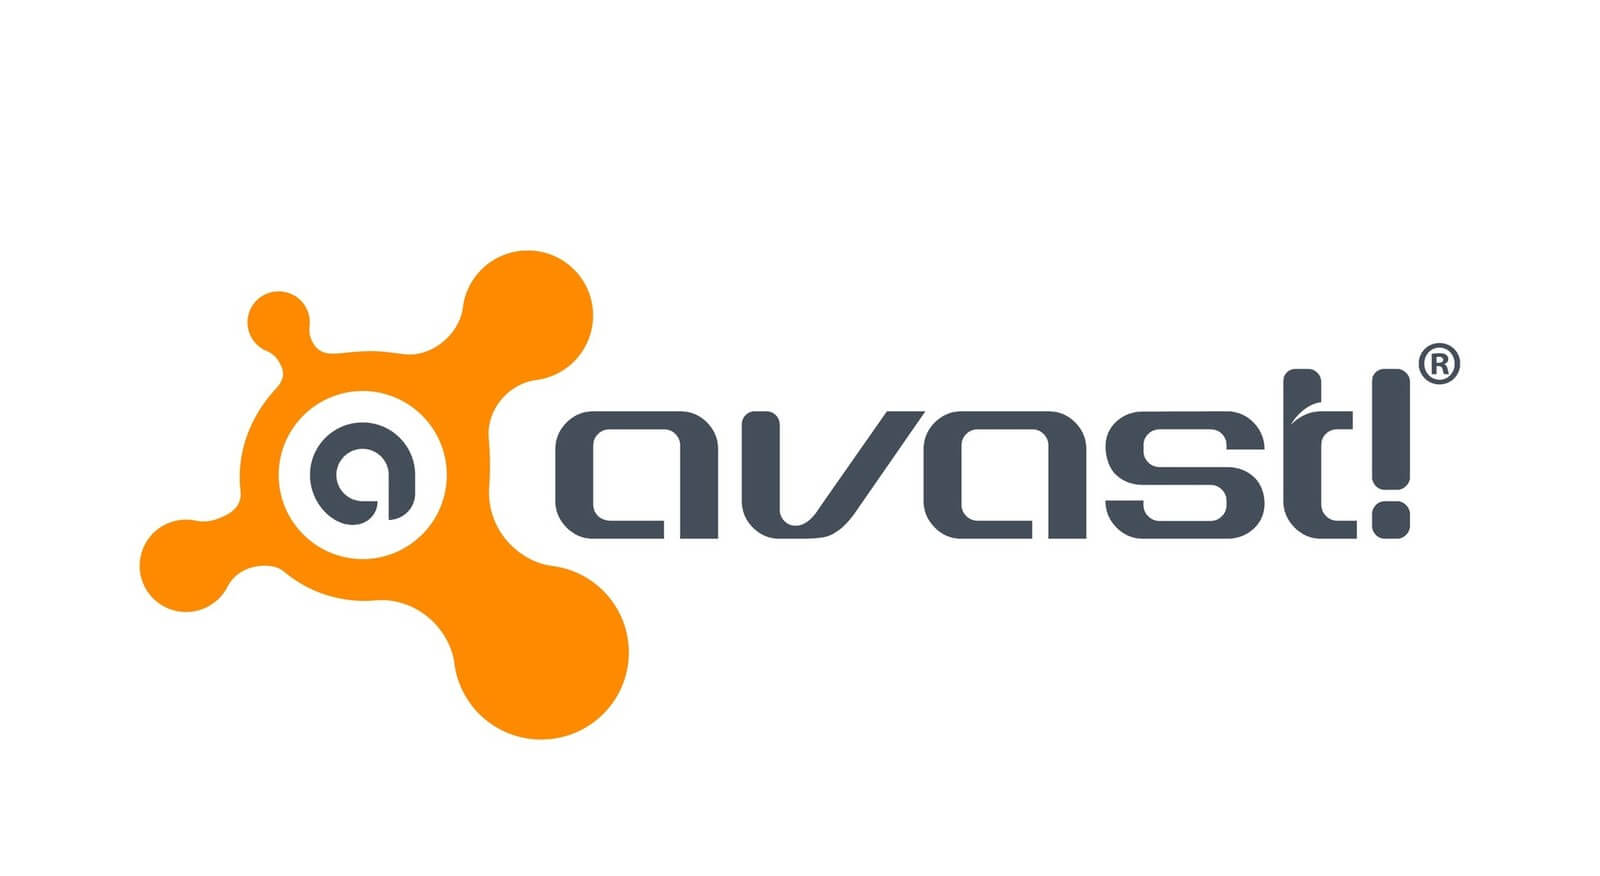 How To Completely Uninstall Avast On Mac